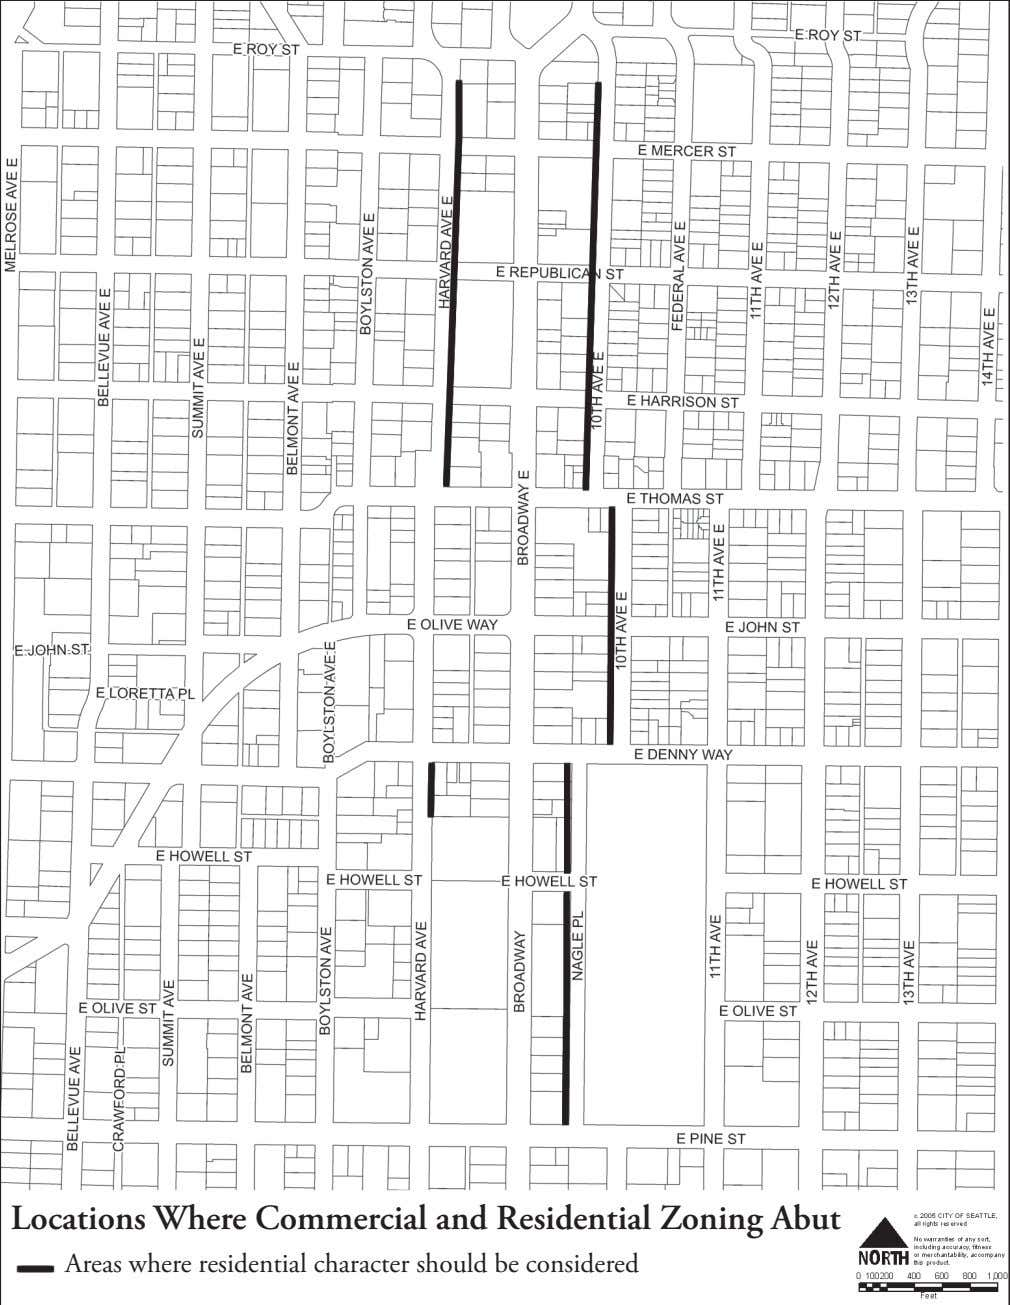 Locations Where Commercial and Residential Zoning Abut Areas where residential character should be considered